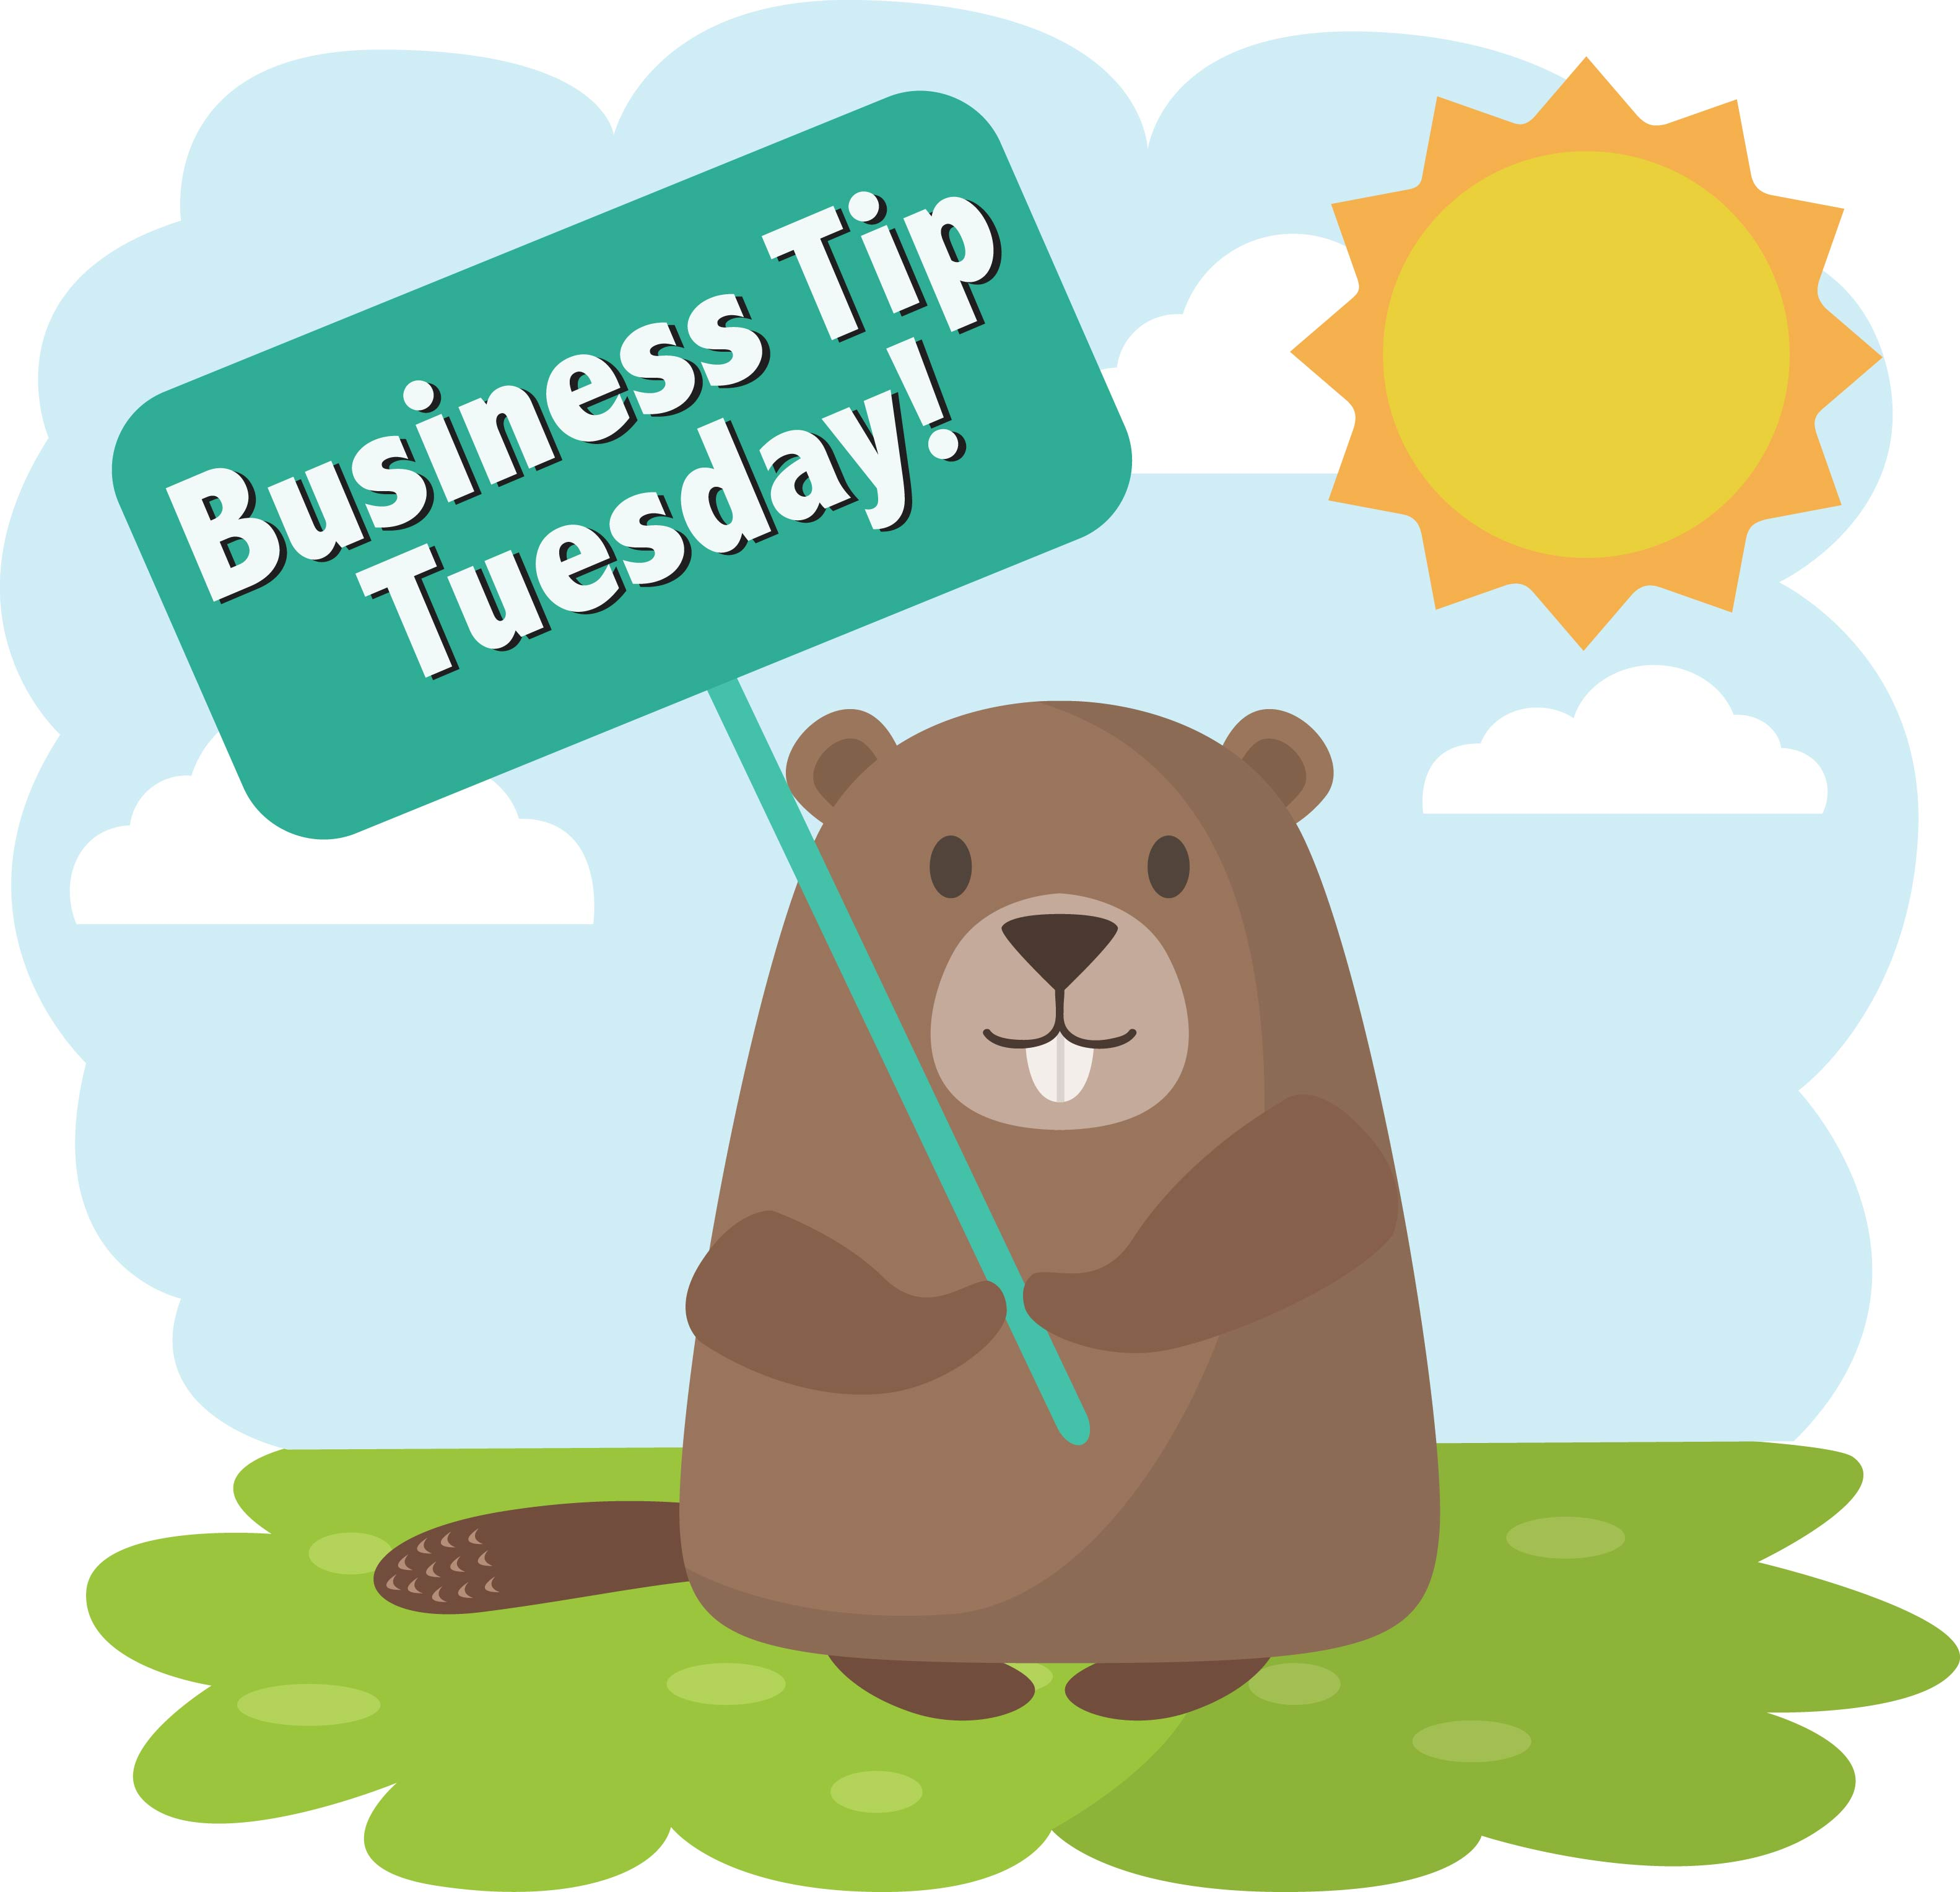 #BusinessTipTuesday – Take steps to improve your business every day!